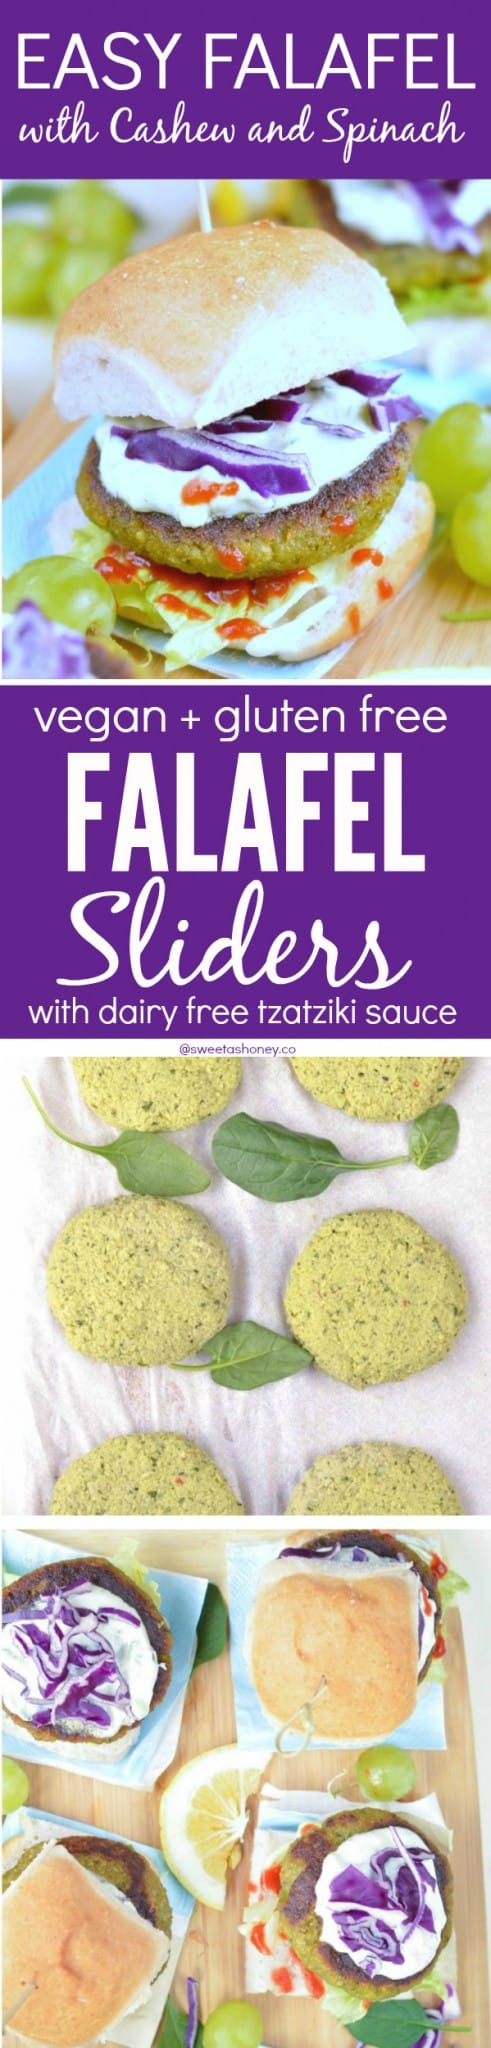 Vegan Falafel Sliders with Cashew and Spinach